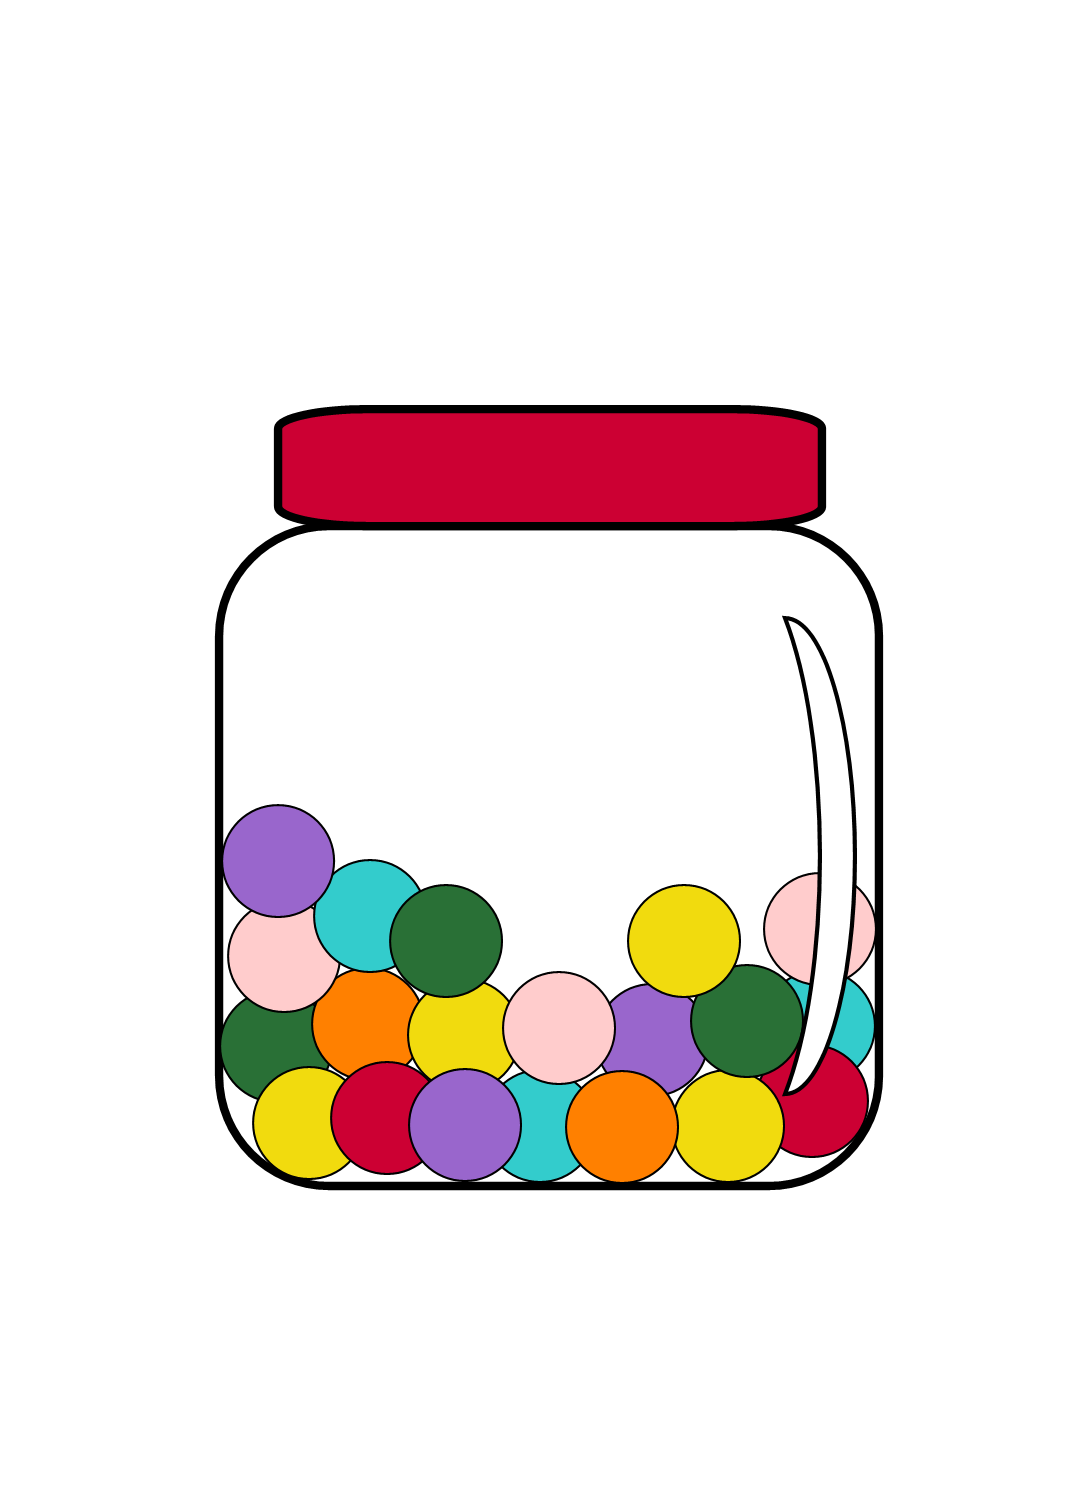 jpg library download Gumball machine clipart outline. Candy skip counting new